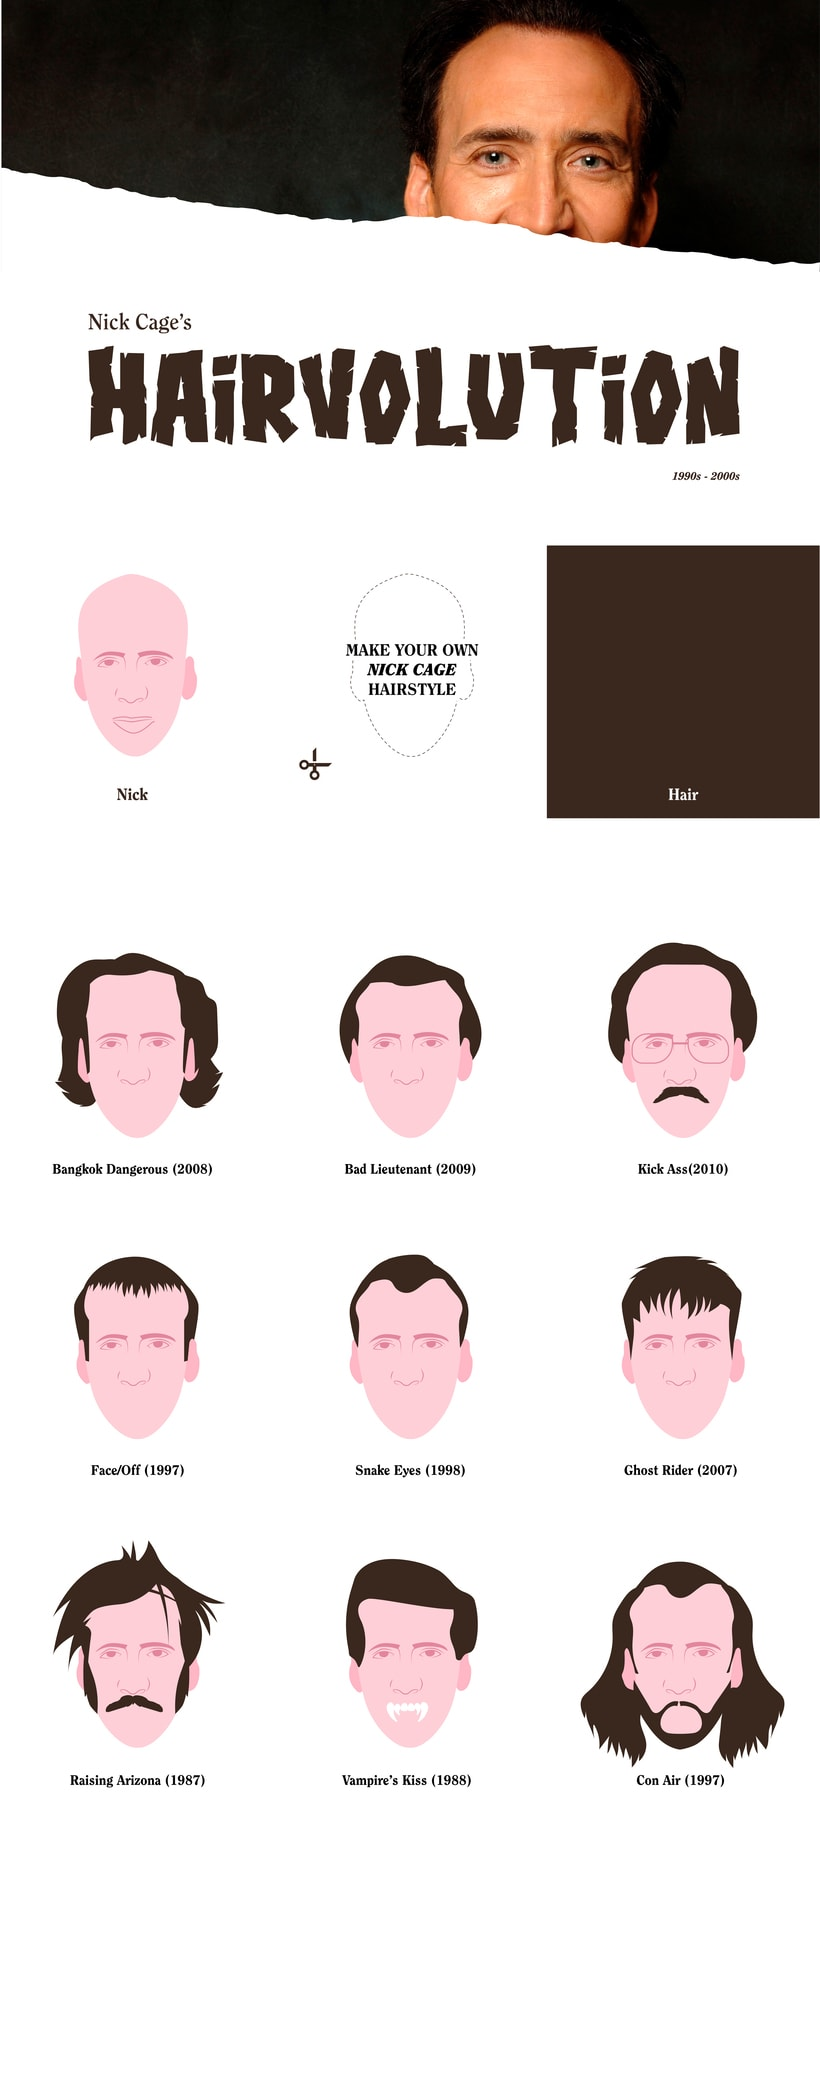 Nic Cage Hairvolution -1